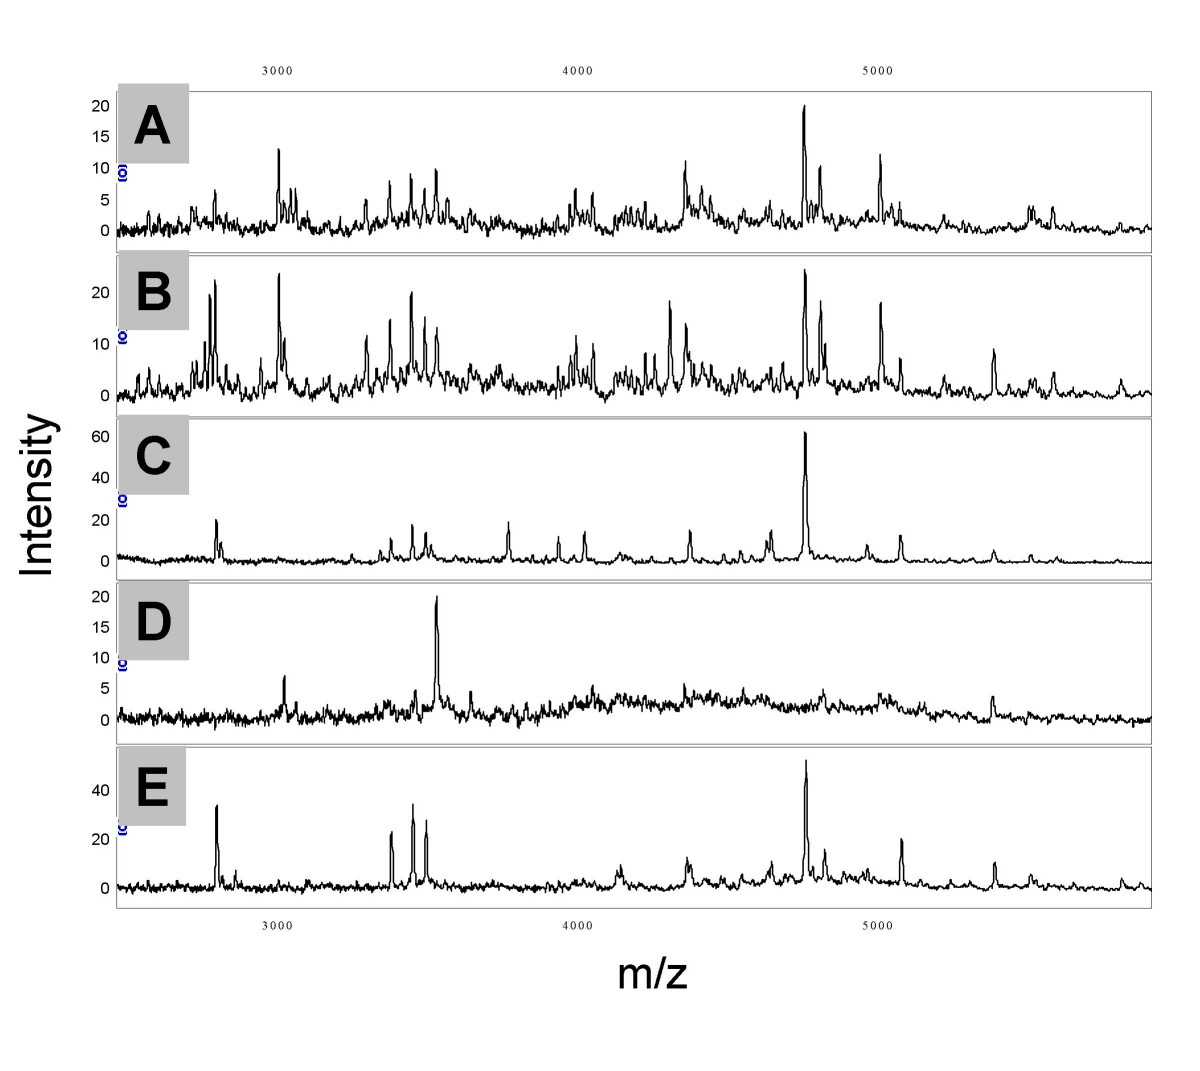 http://static-content.springer.com/image/art%3A10.1186%2F1477-5956-6-19/MediaObjects/12953_2008_Article_87_Fig1_HTML.jpg